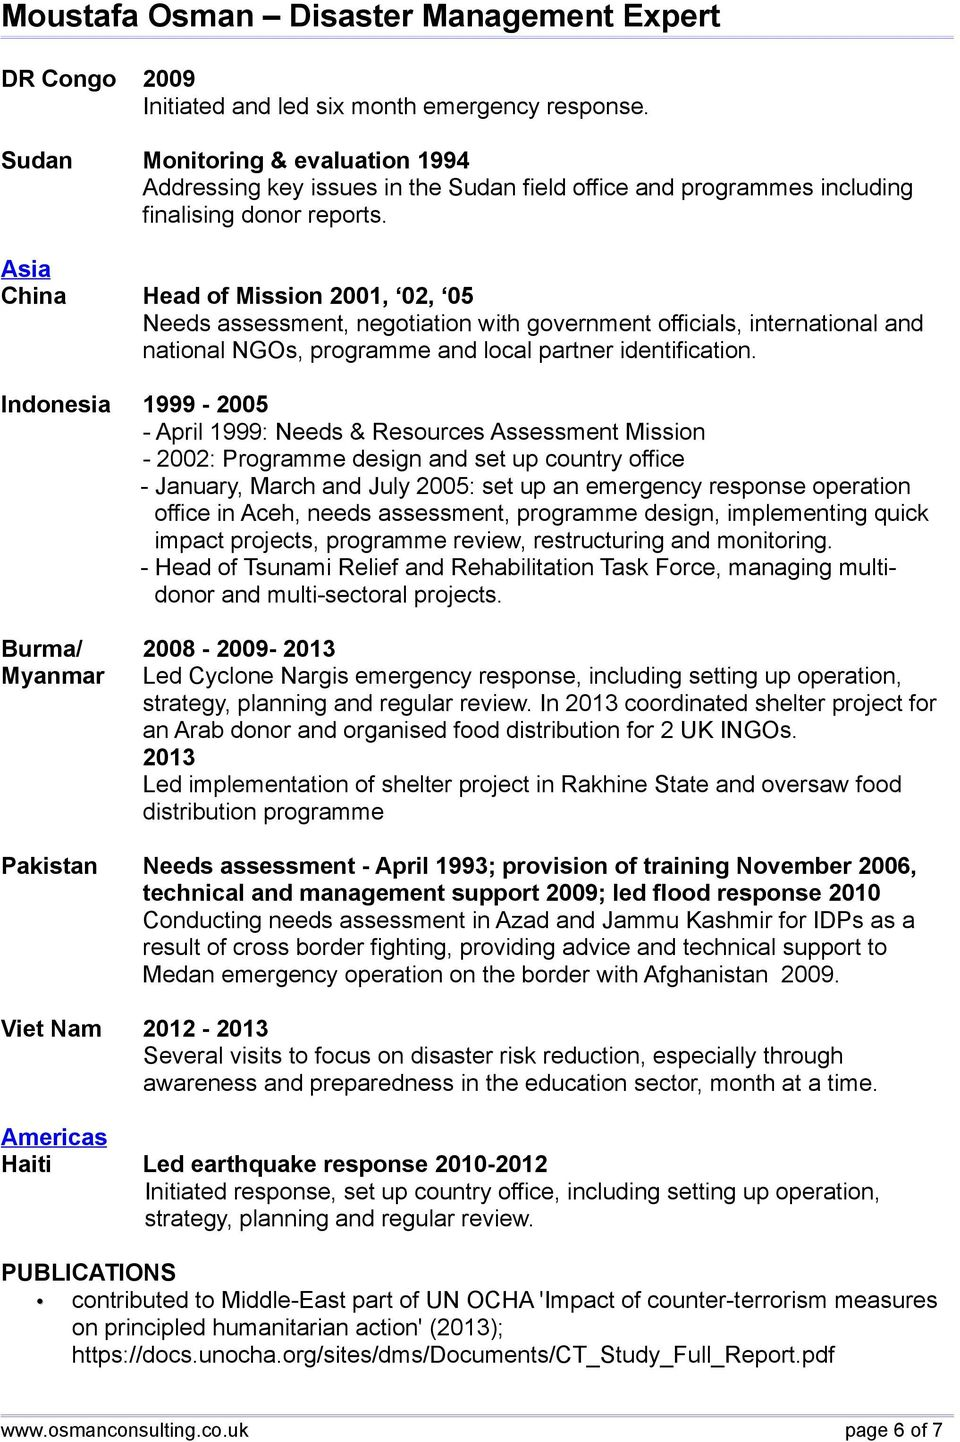 Indonesia 1999-2005 - April 1999: Needs & Resources Assessment Mission - 2002: Programme design and set up country office - January, March and July 2005: set up an emergency response operation office